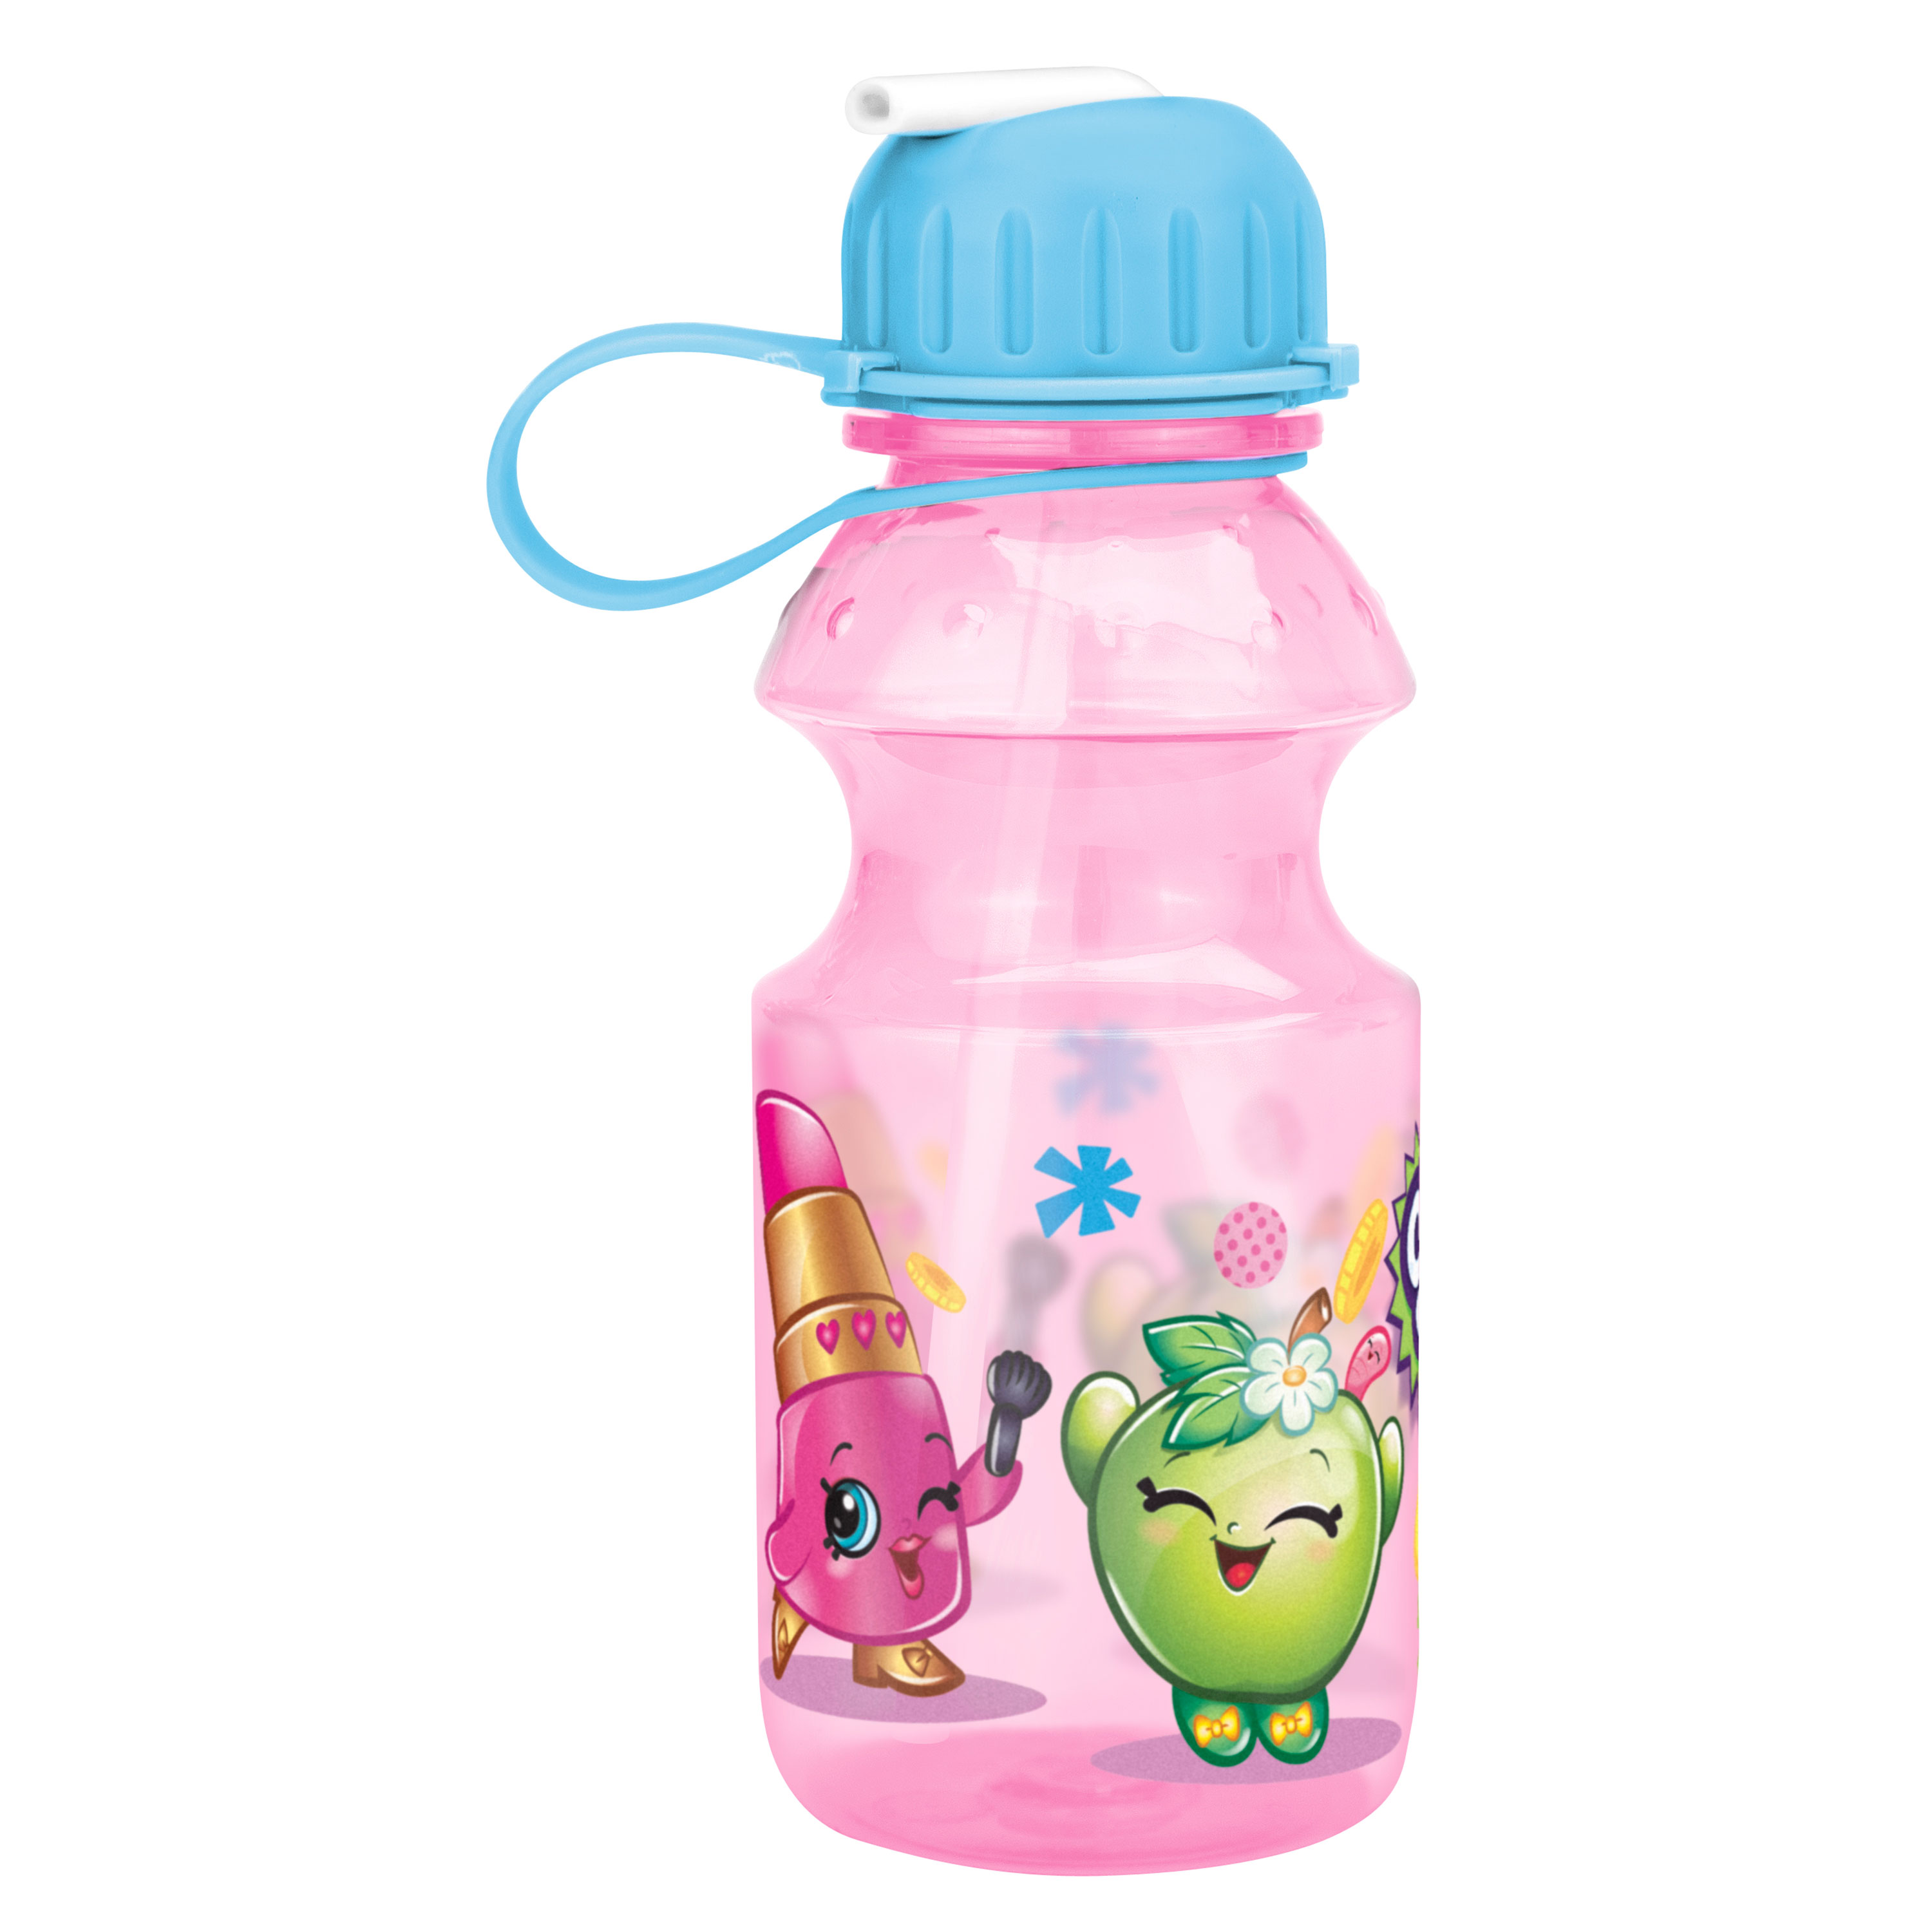 Shopkins Lippy Lips & Apple Blossom Water Bottles 14 oz.